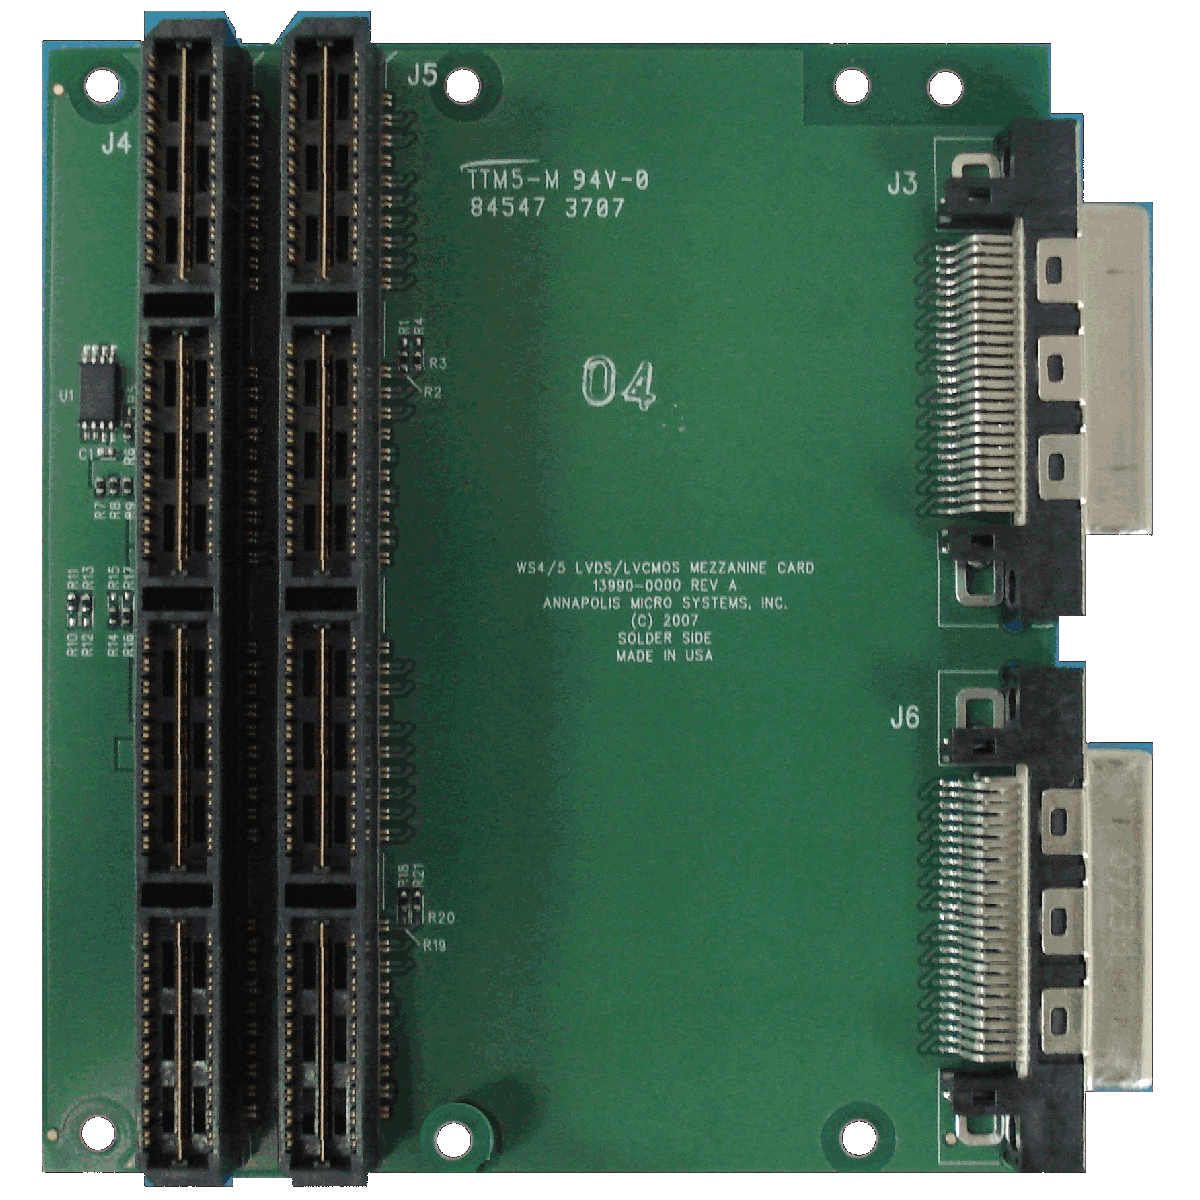 High Speed LVDS/2.5V-LVCMOS Mezzanine Card